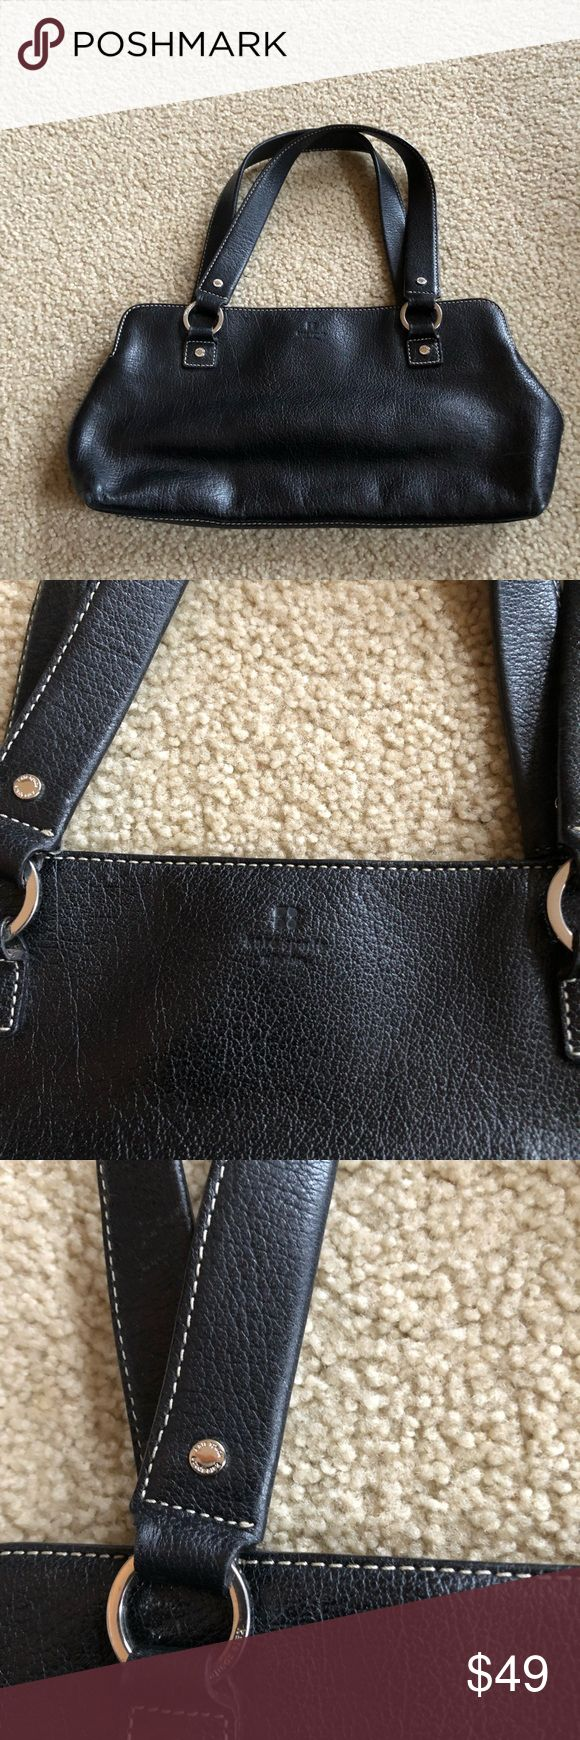 Classic Black Leather Coach Satchel Classic Black Leather Coach Satchel Great shape! Coach Bags Satchels